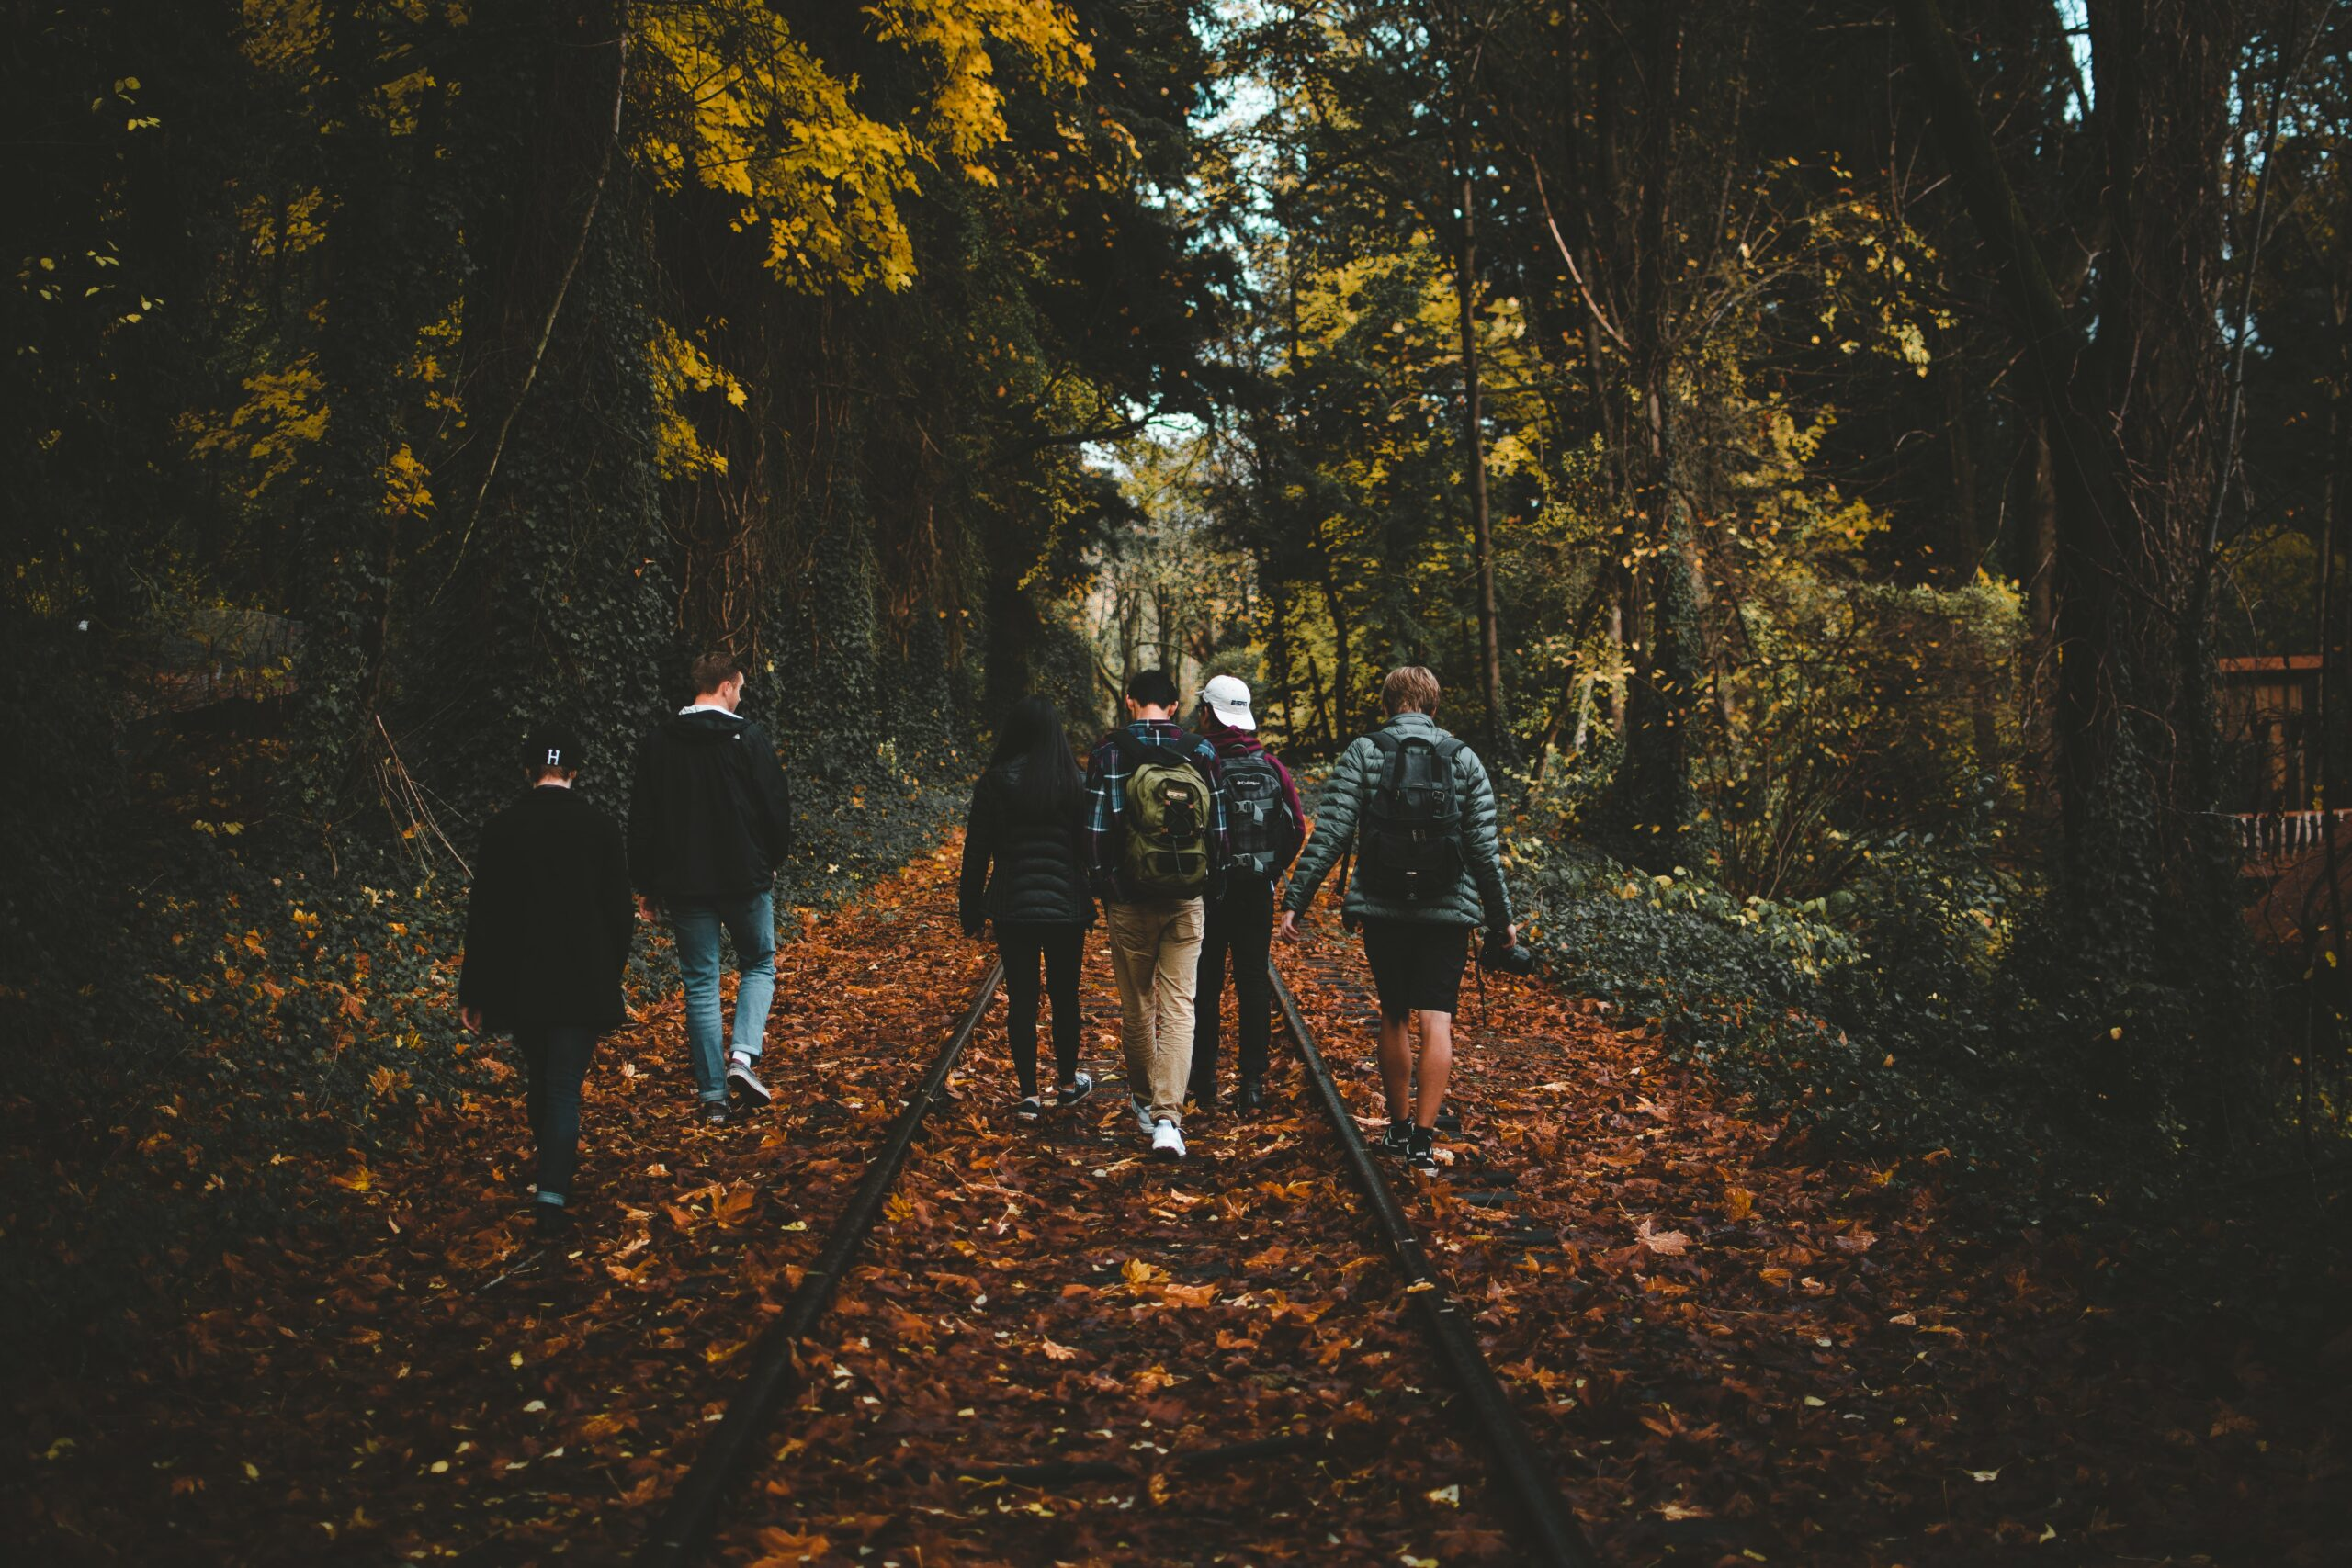 A group of young people walking in the woods. Image credit: Anthony Intraversato, Unsplash